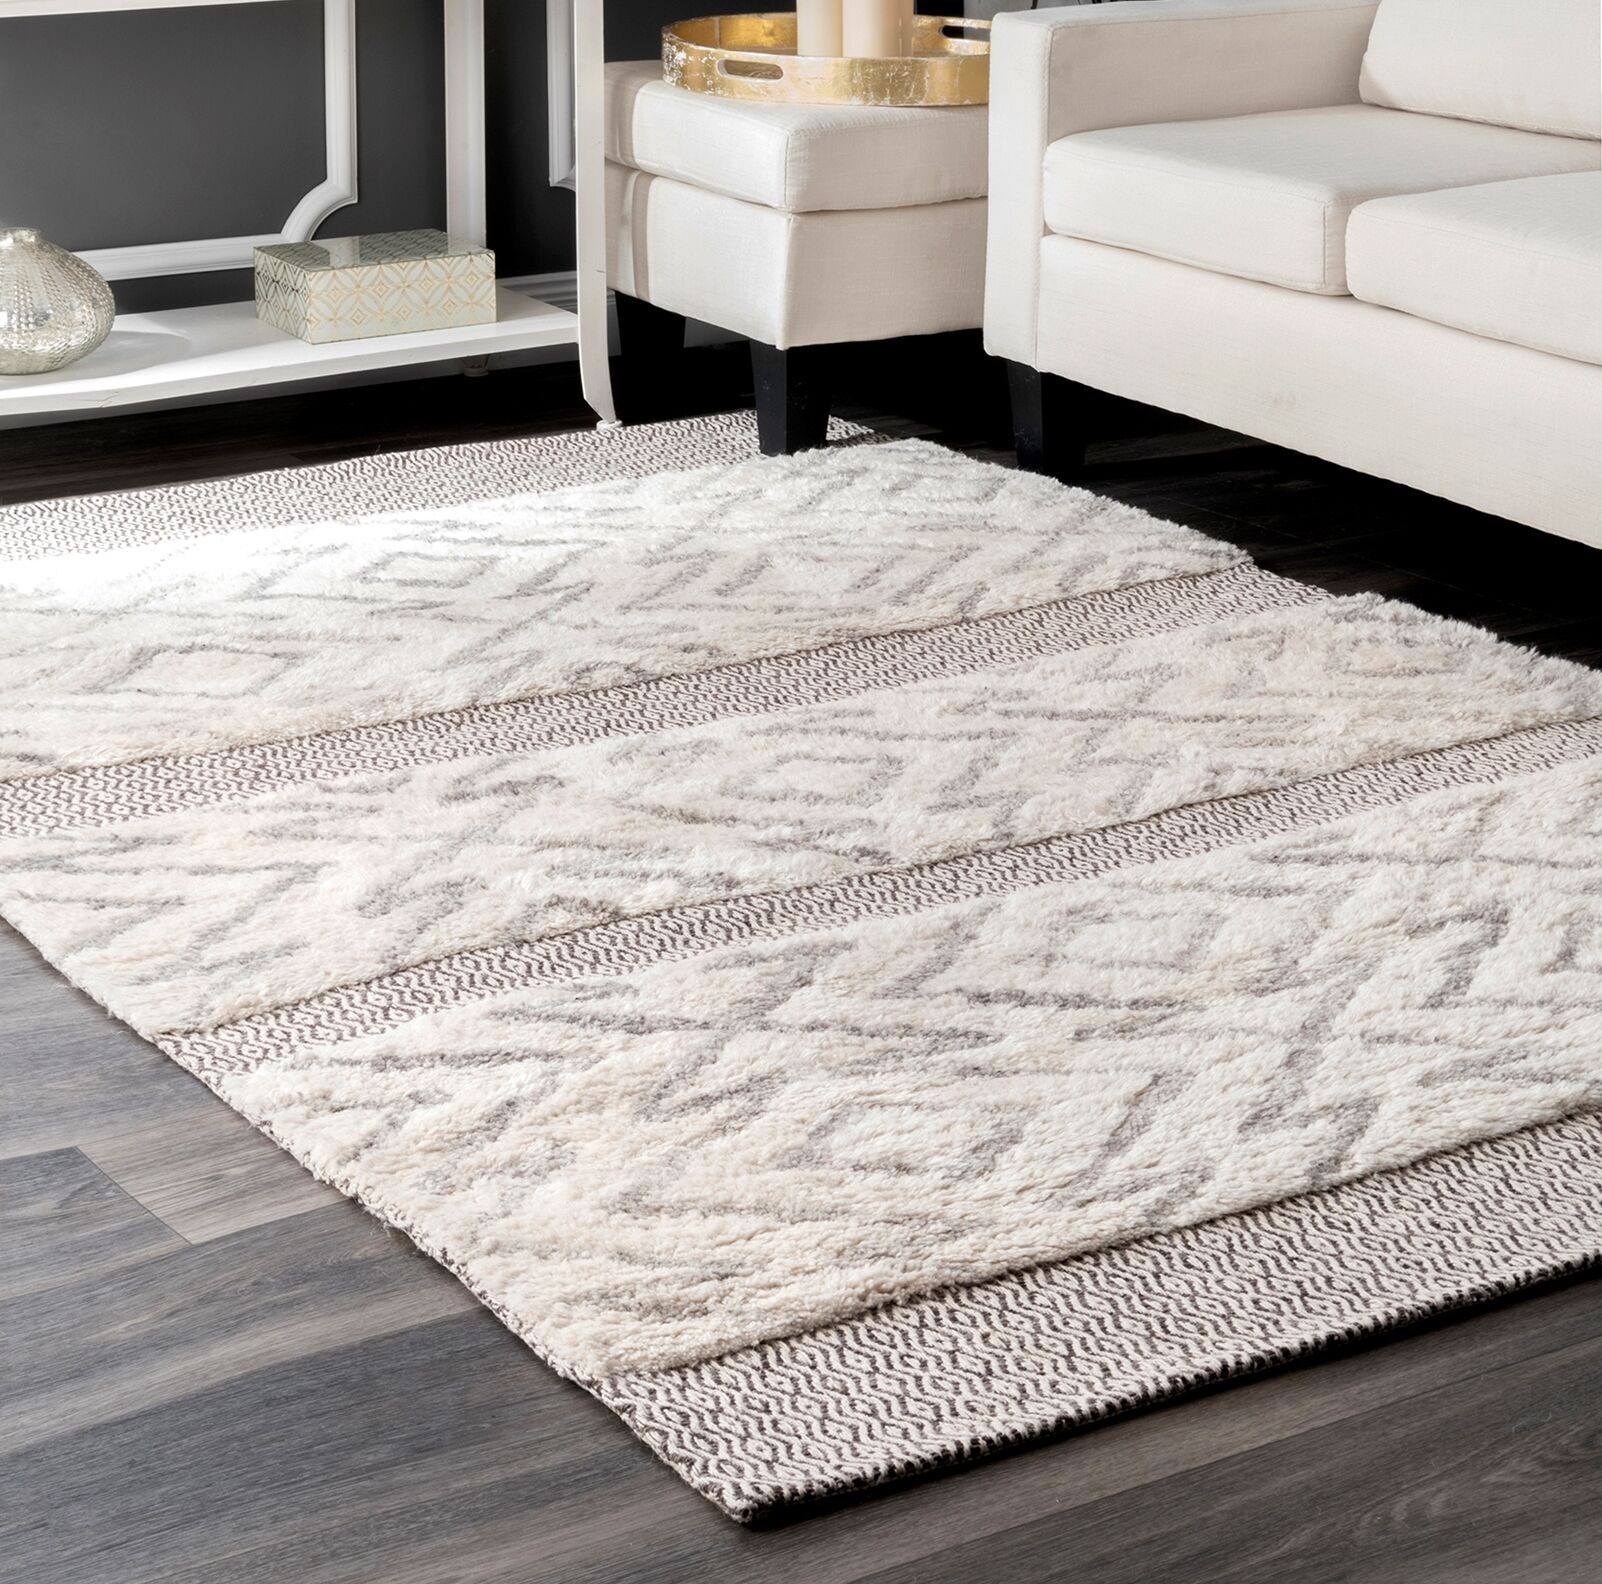 Lolley Gray Area Rug Rug Size: Rectangle 8' 6